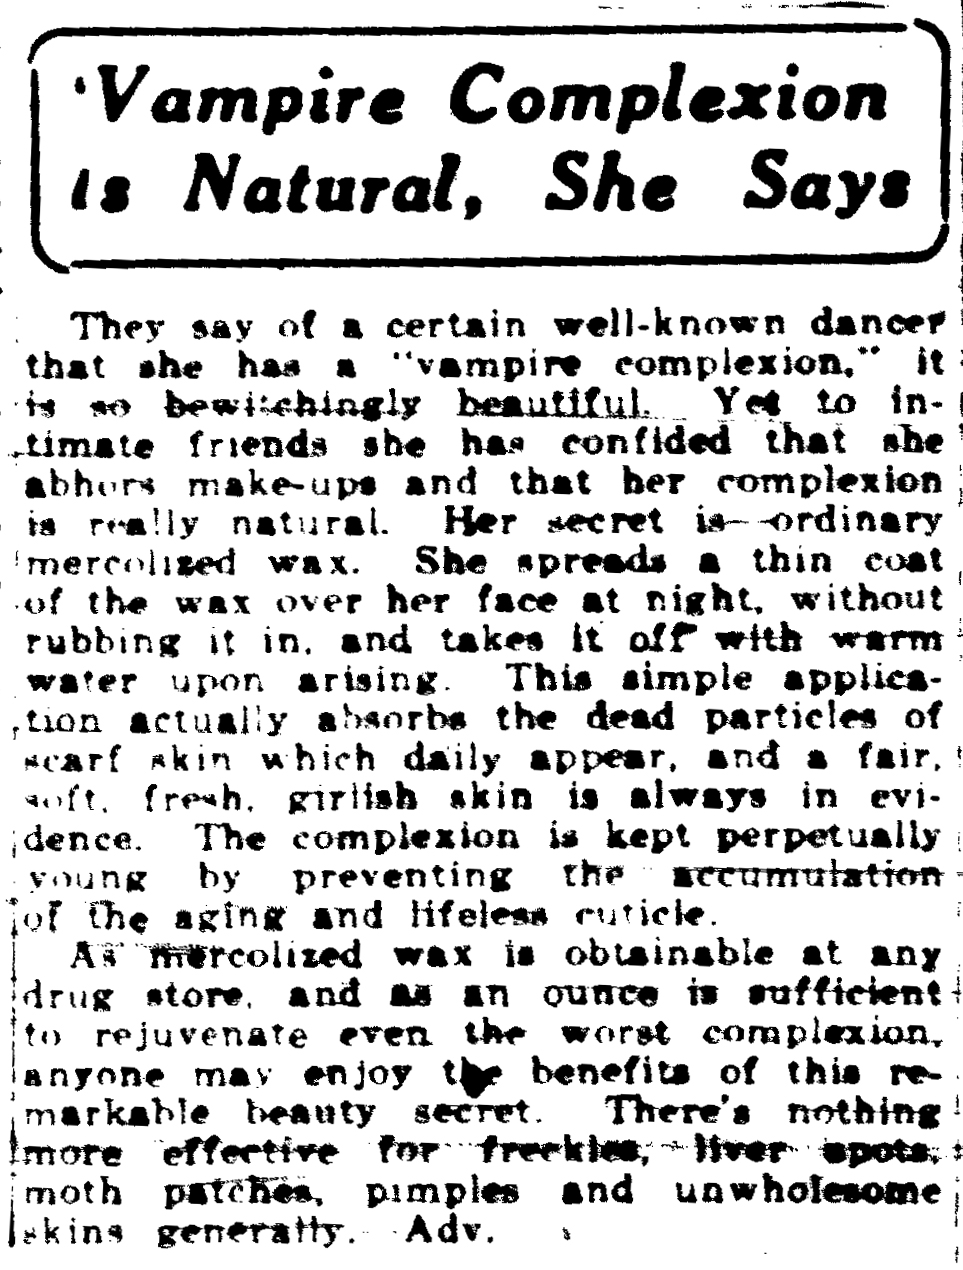 """Vampire Complexion is Natural, She Says,"" Dayton Daily News, 27 April 1922, page A28."